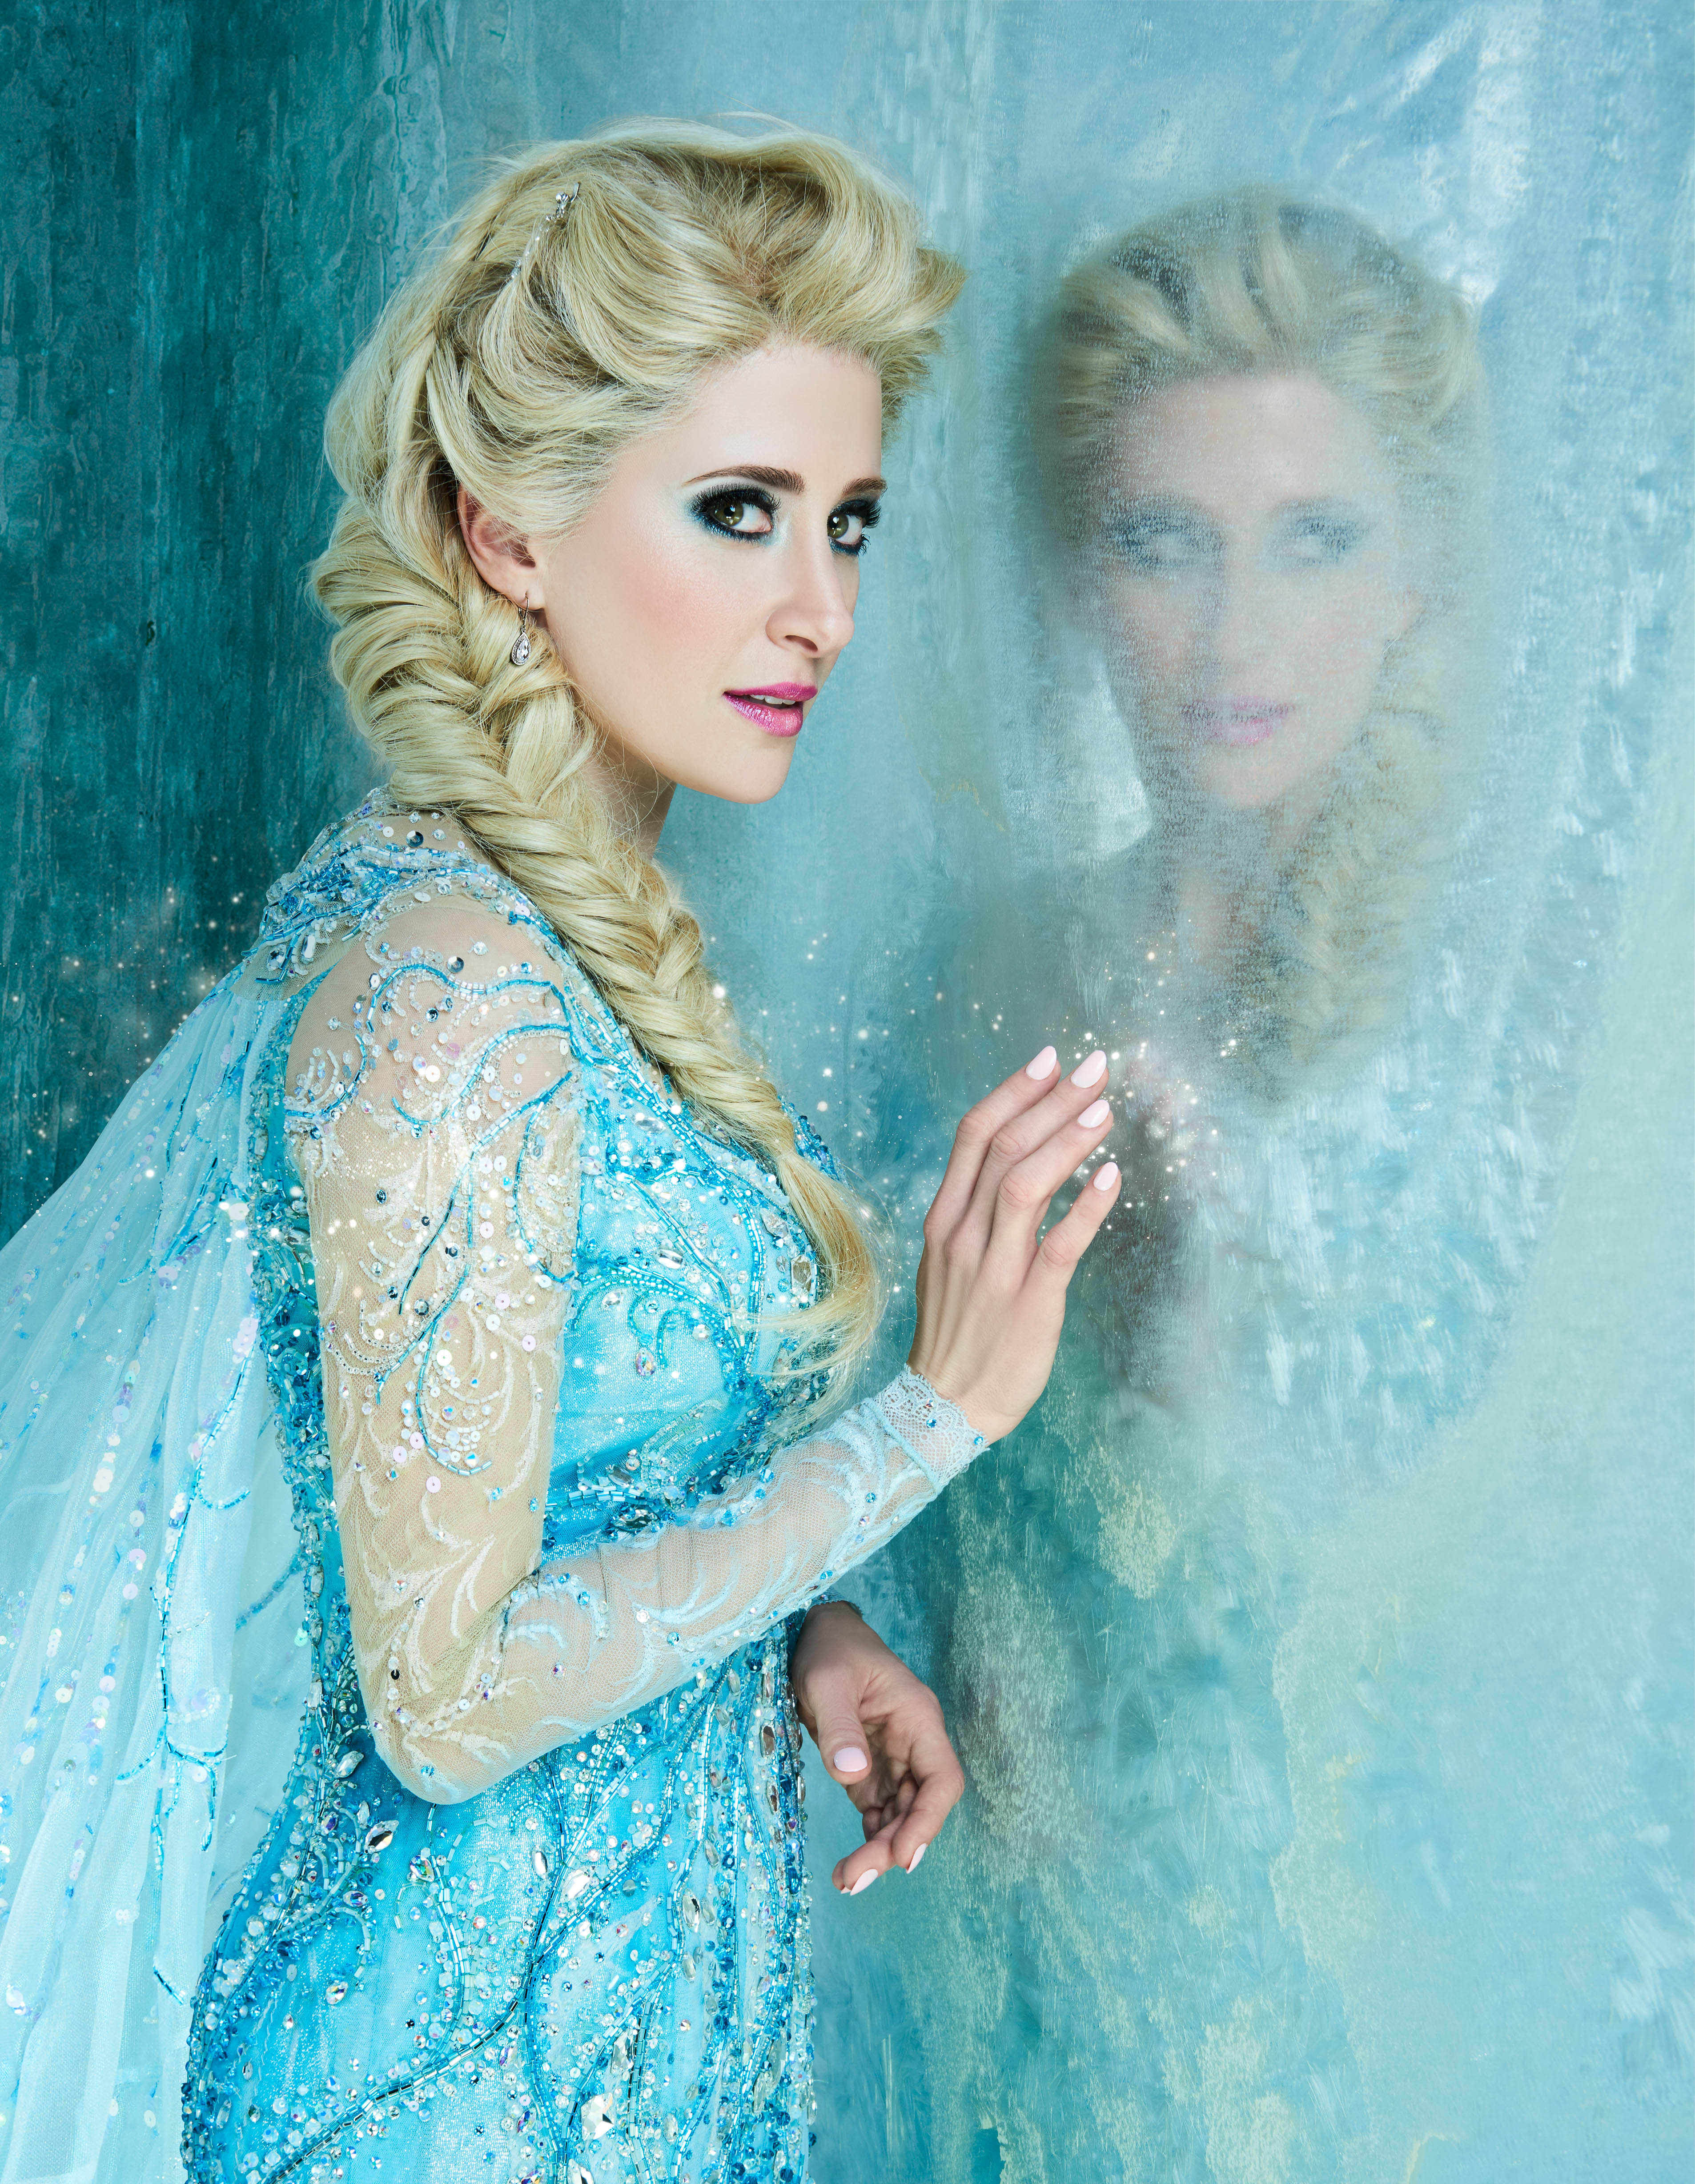 Elsa Anna See Anna Elsa And The Cast Of Frozen On Broadway Come To Life In